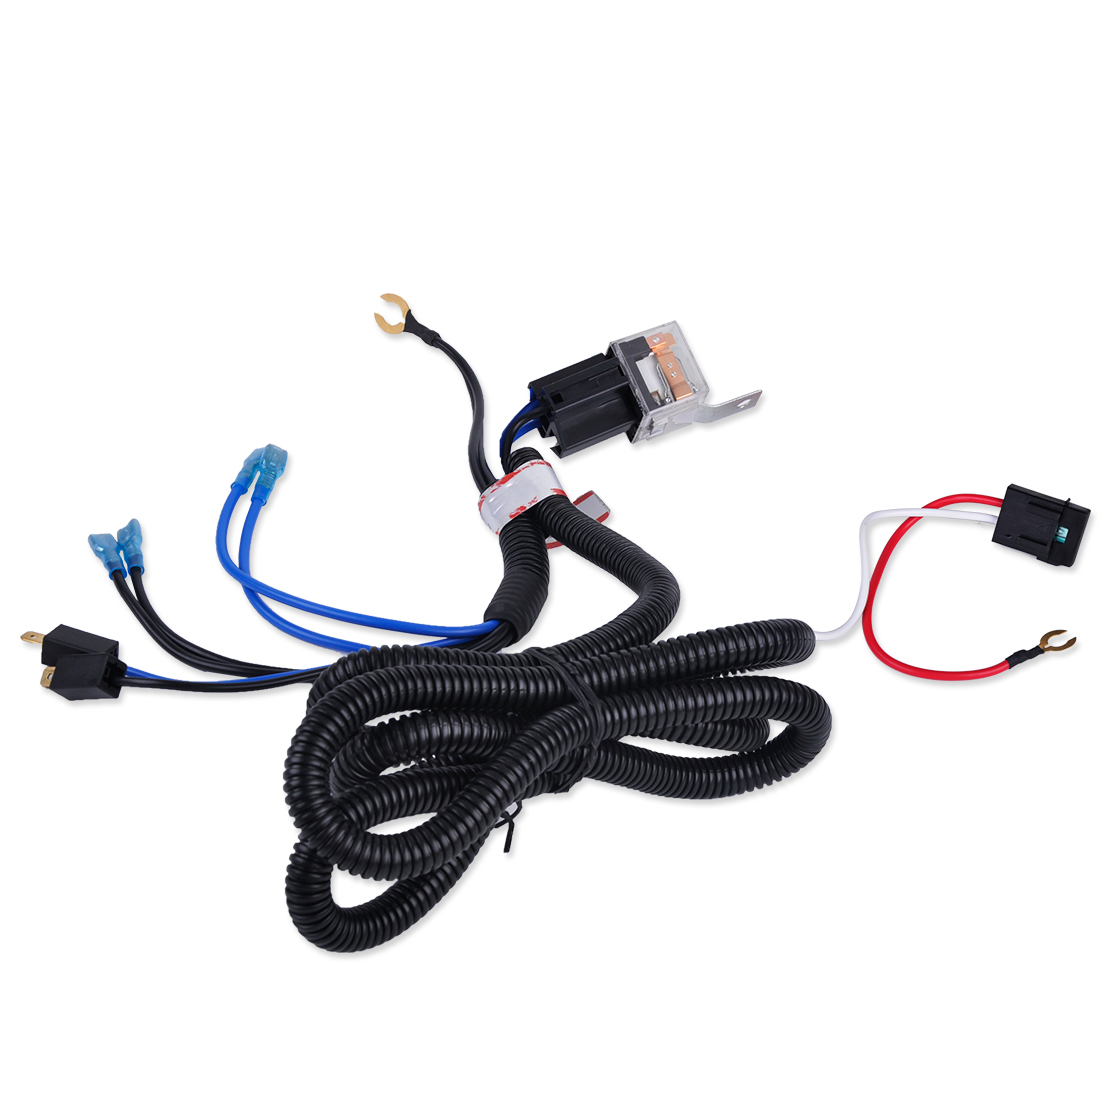 beler New 12V Wiring Harness Relay Kit Fit for Car Auto Truck Grille Mount Blast Tone Horn For VW Audi Ford BMW Chevrolet